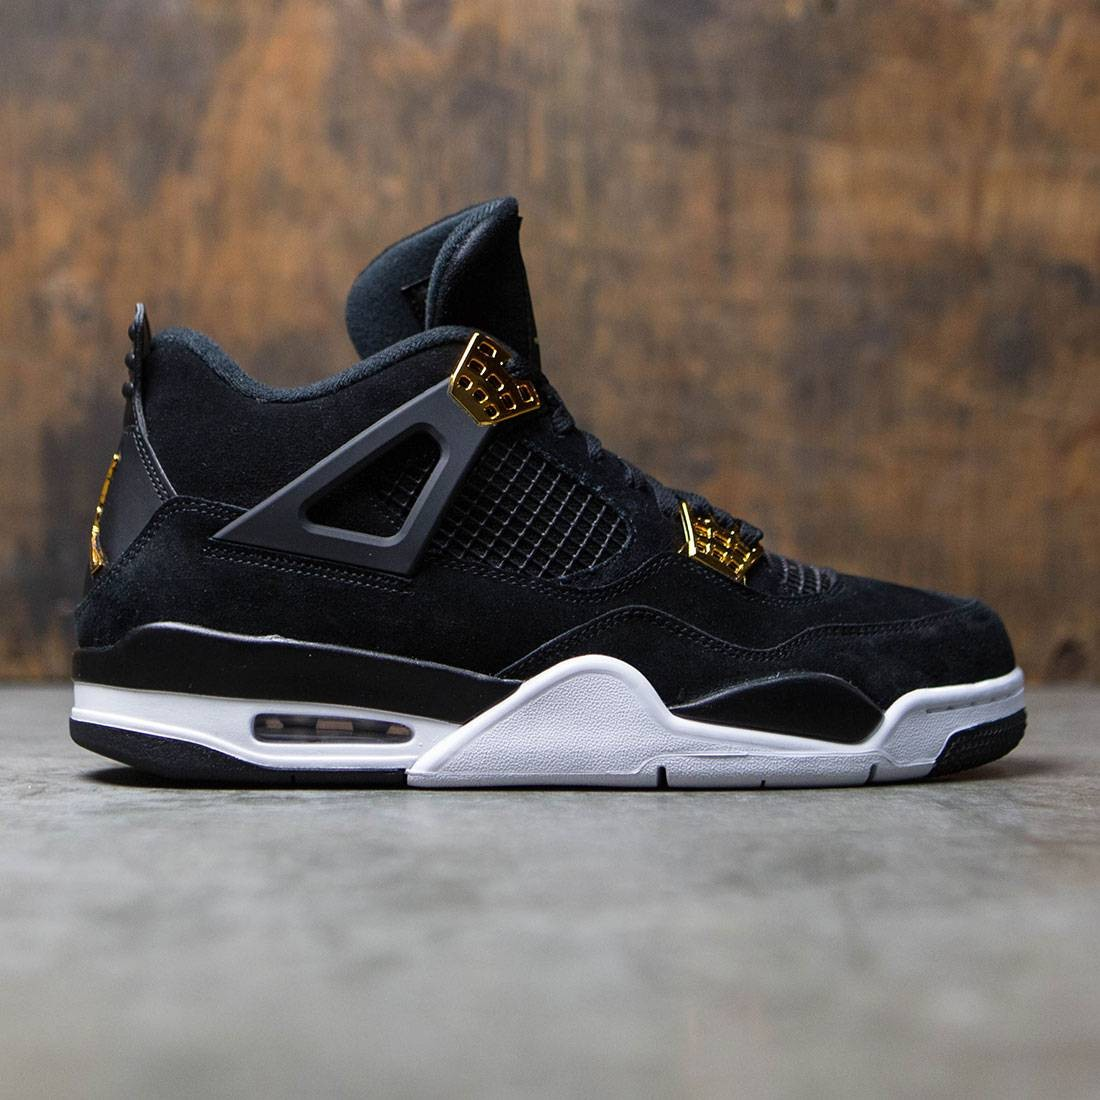 separation shoes 95d49 ea8b9 Jordan Men Air Jordan 4 Retro (black   metallic gold-white)